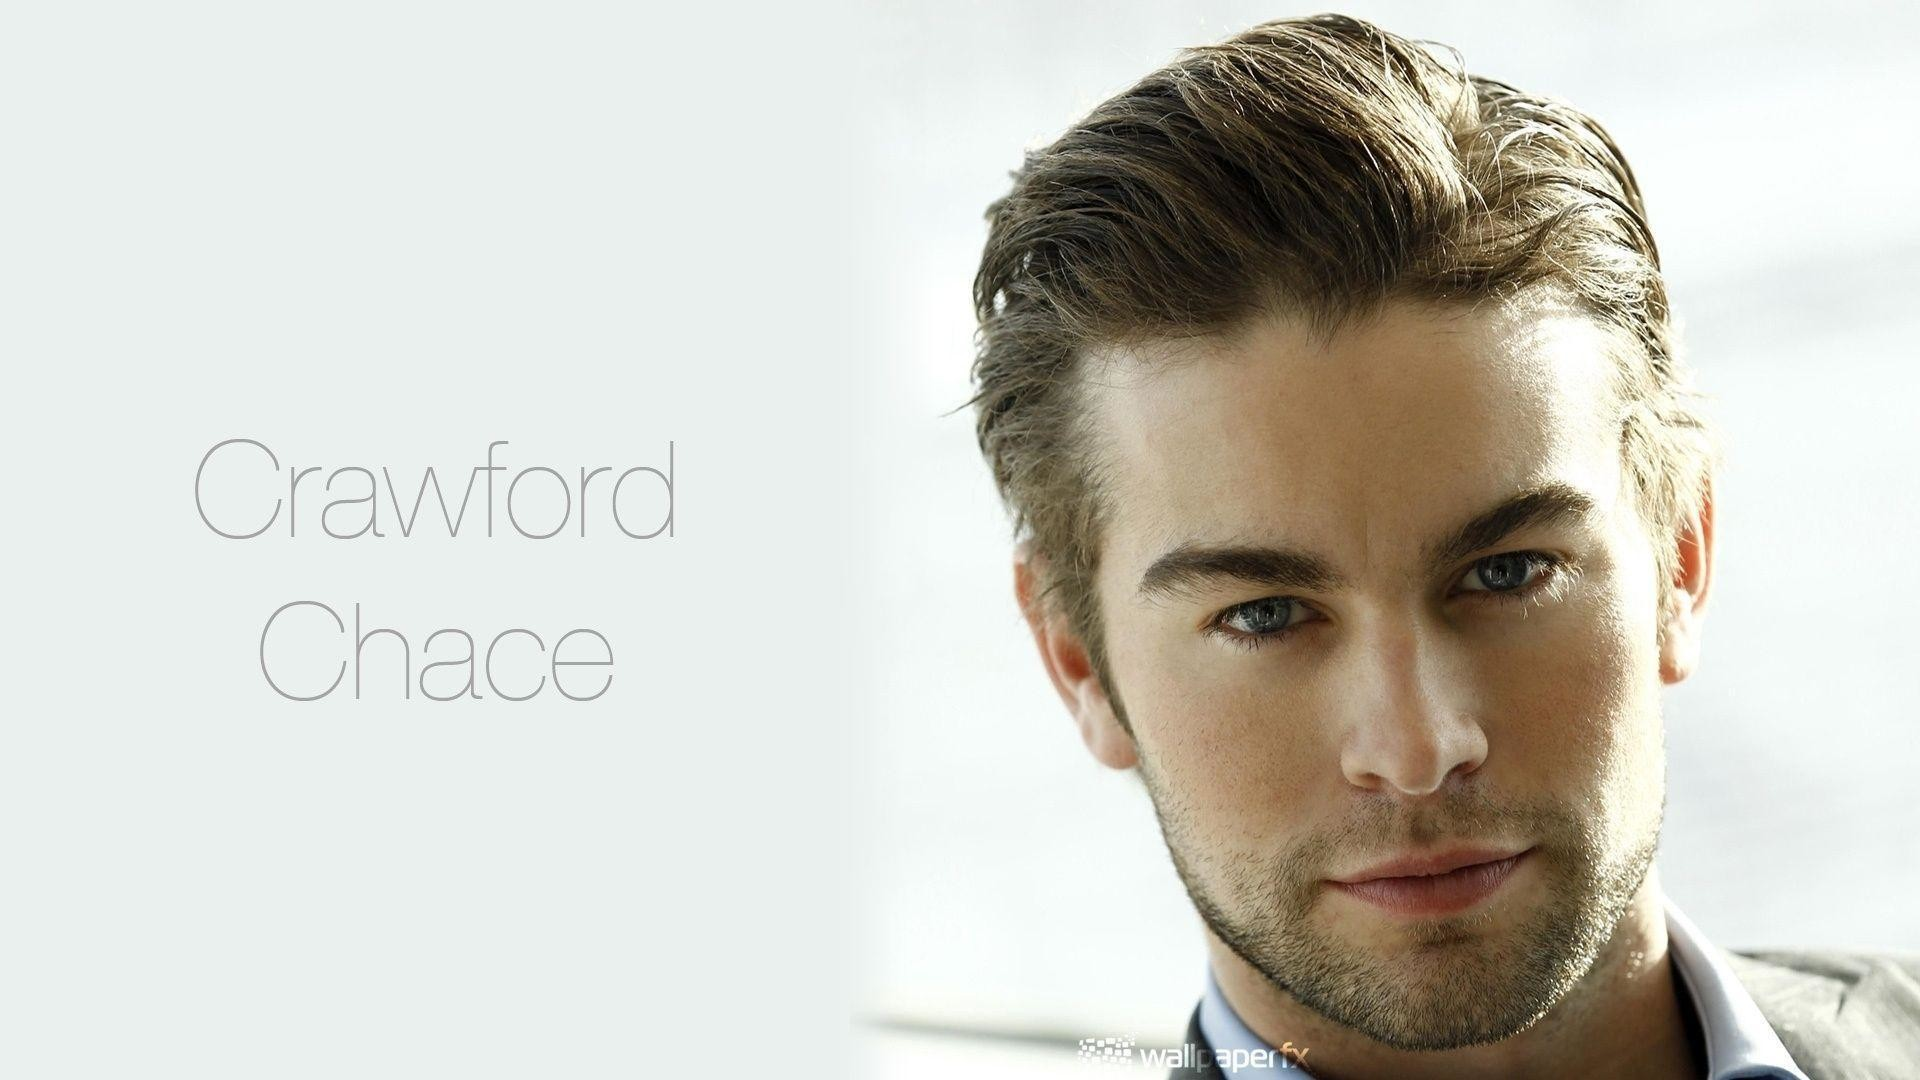 Res: 1920x1080, Fonds d'écran Chace Crawford : tous les wallpapers Chace Crawford